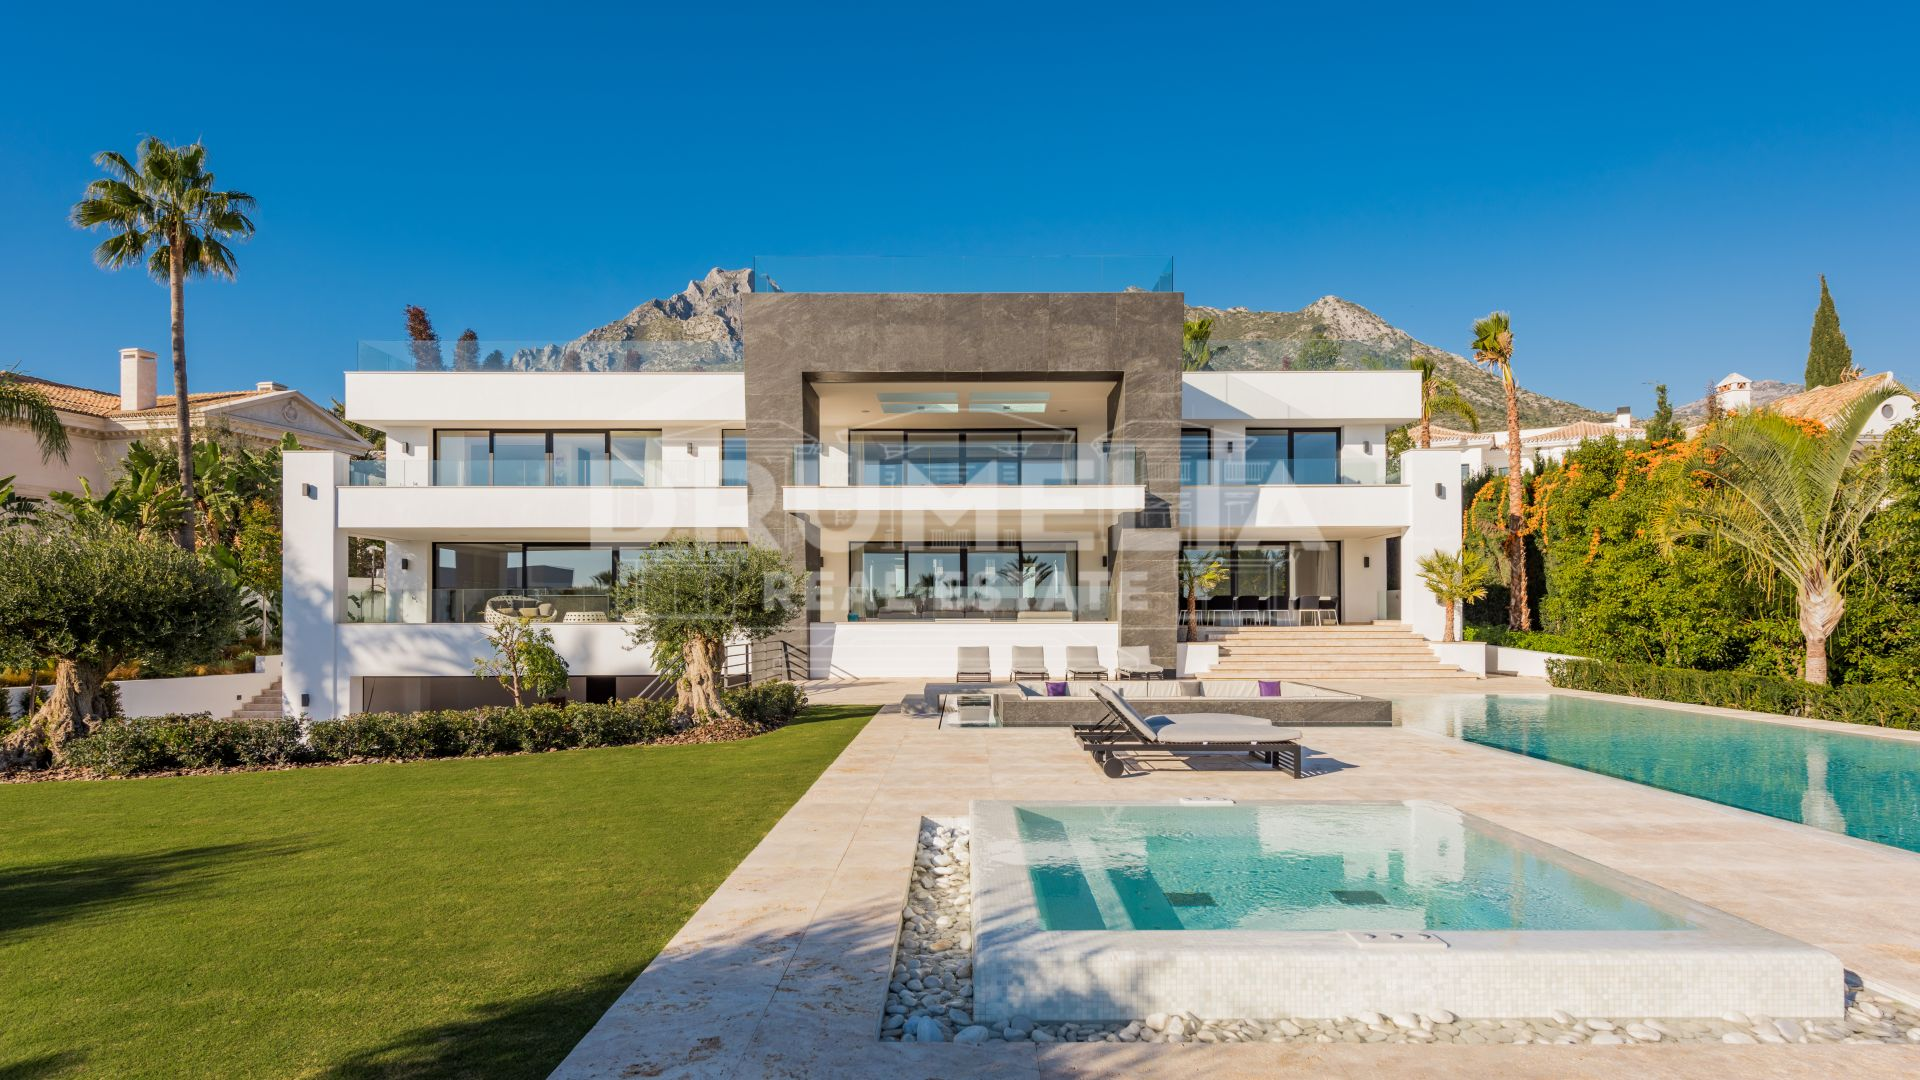 Marbella Golden Mile, New-build Unique Luxury Contemporary Villa, Sierra Blanca, Golden Mile (Marbella)